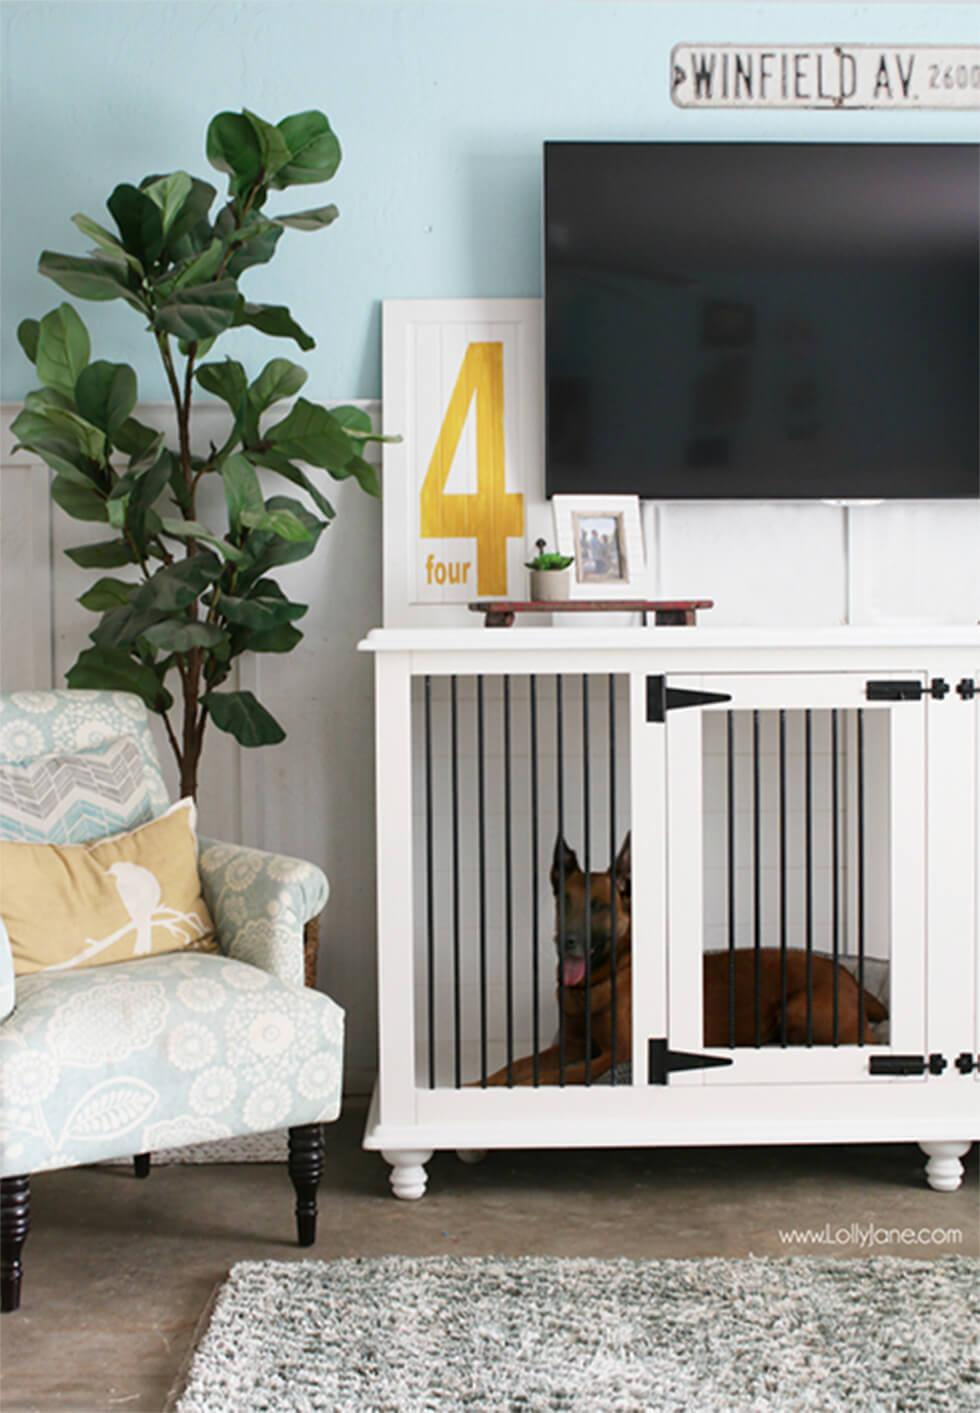 Dog in a functional crate in a dog-friendly living room